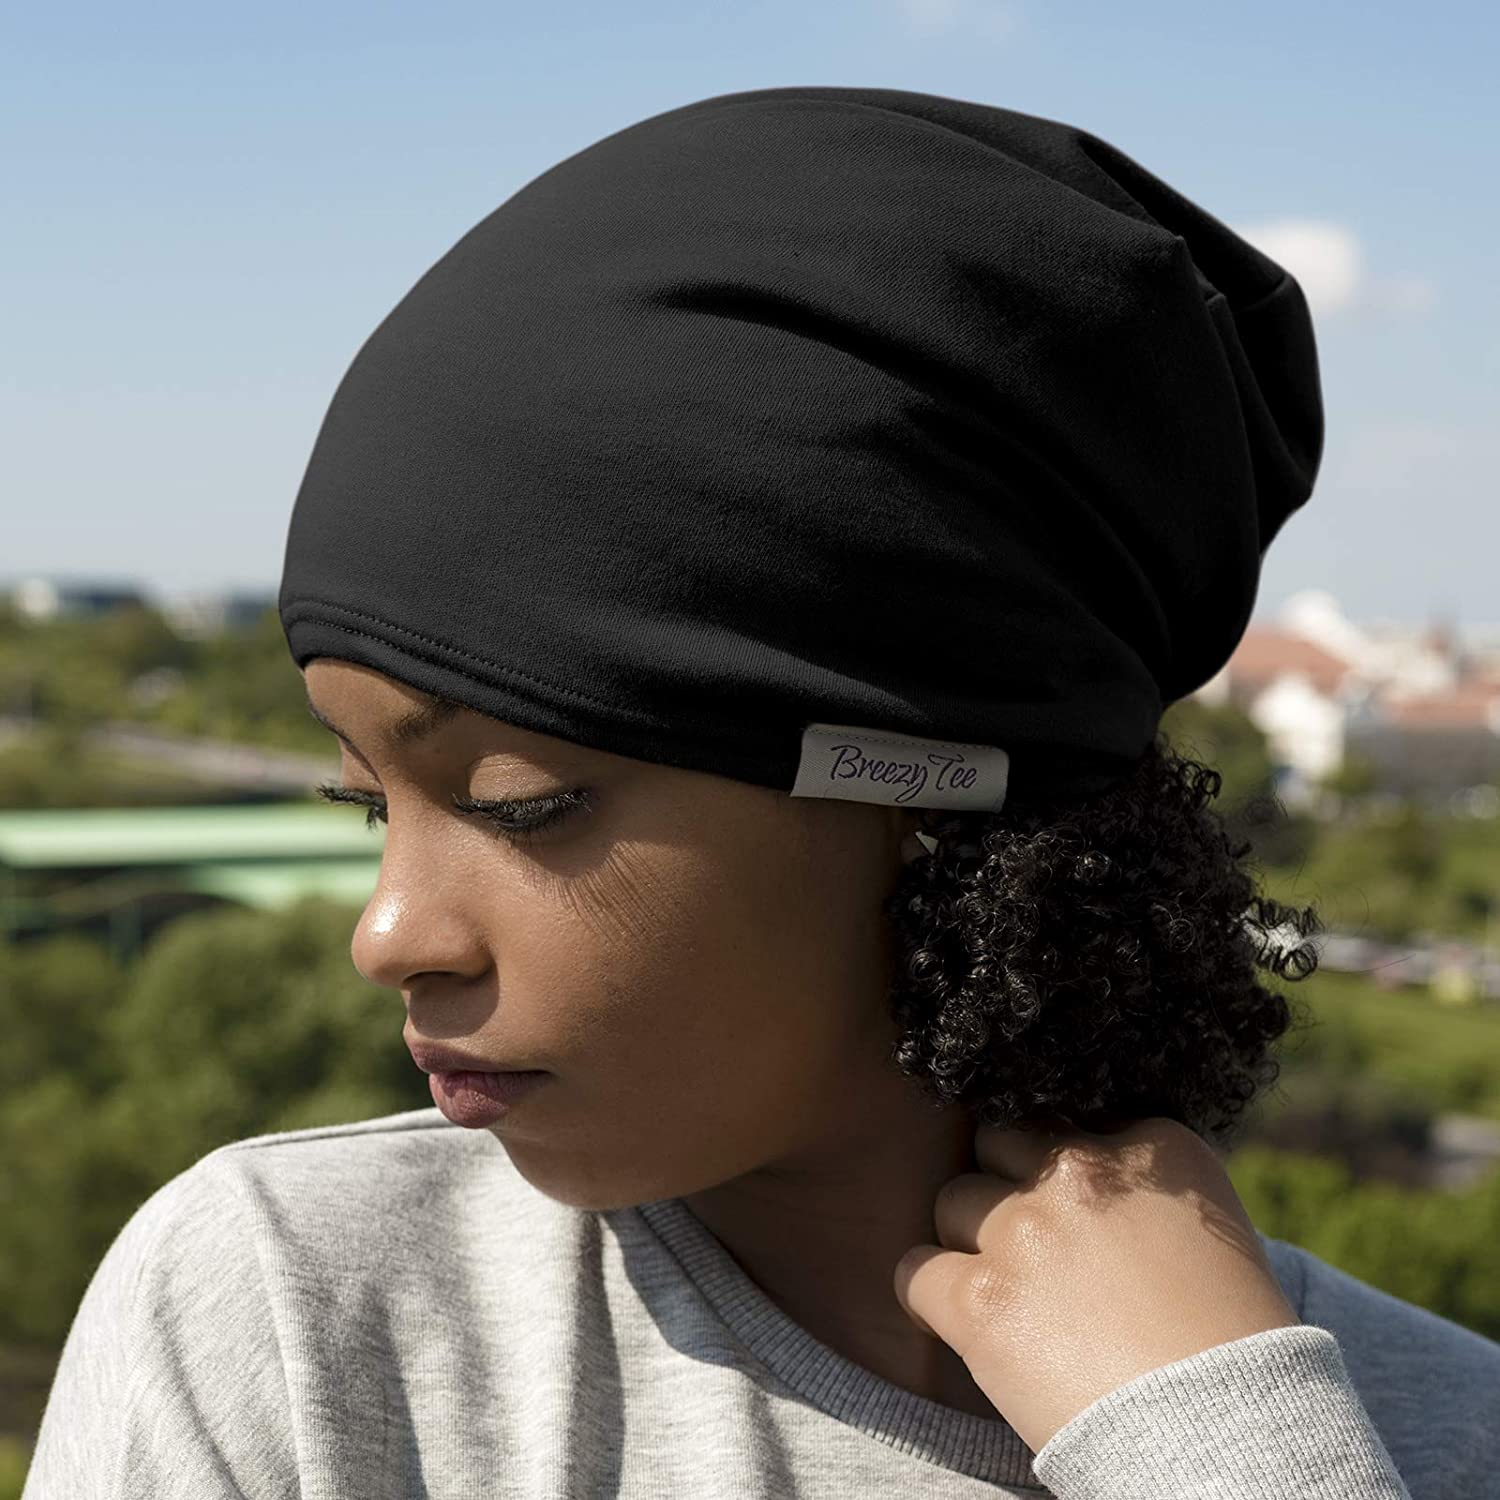 Satin Lined Beanie Black Jersey Cap, 20-22inches 51-56cm around the head